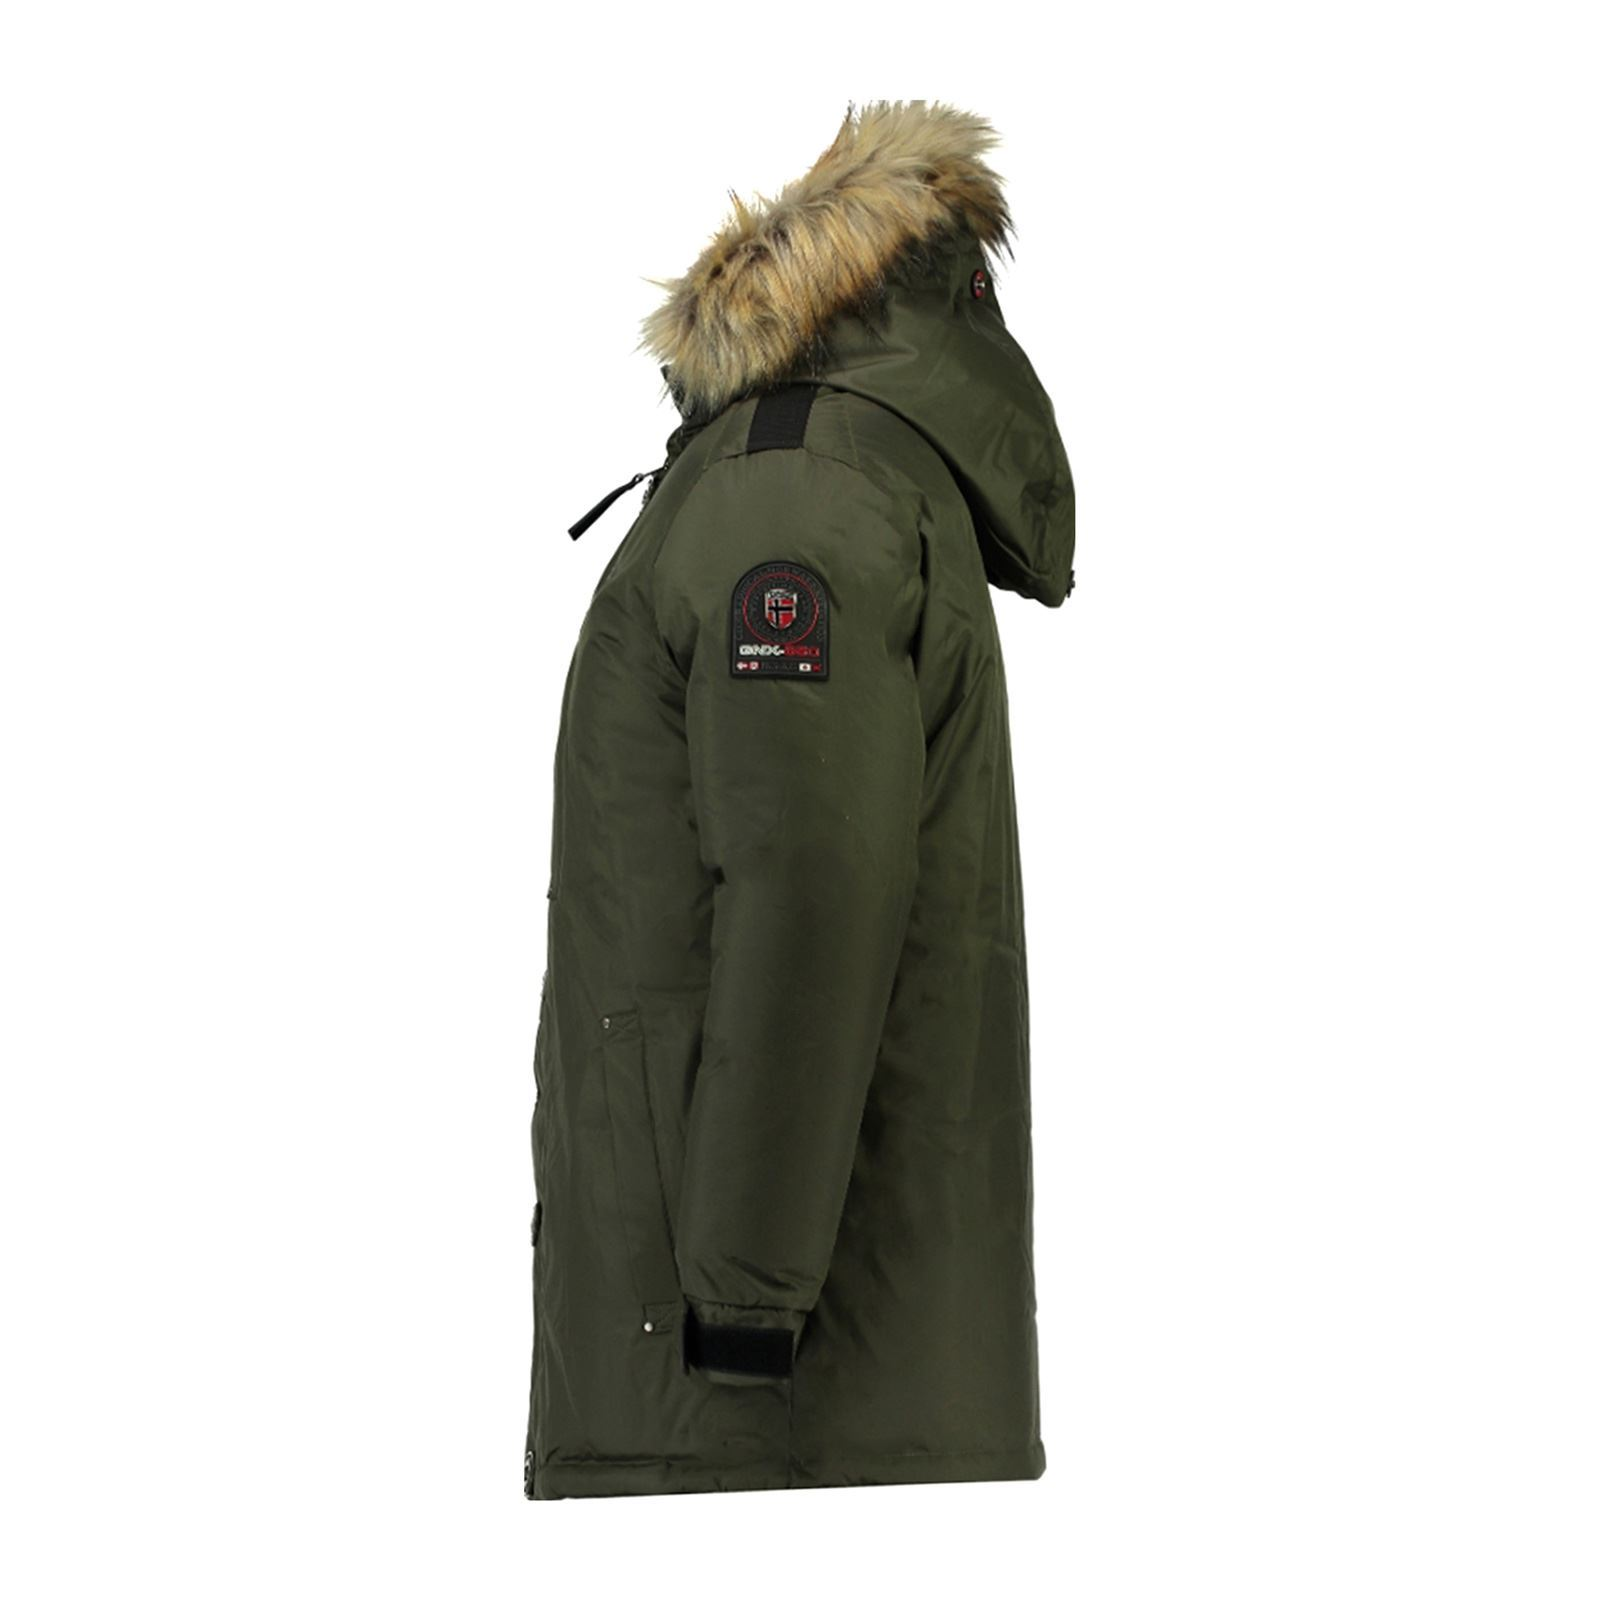 GEOGRAPHICAL NORWAY Agada 068 - Parka avec capuche imitation fourrure - kaki 28be0eeea8e8